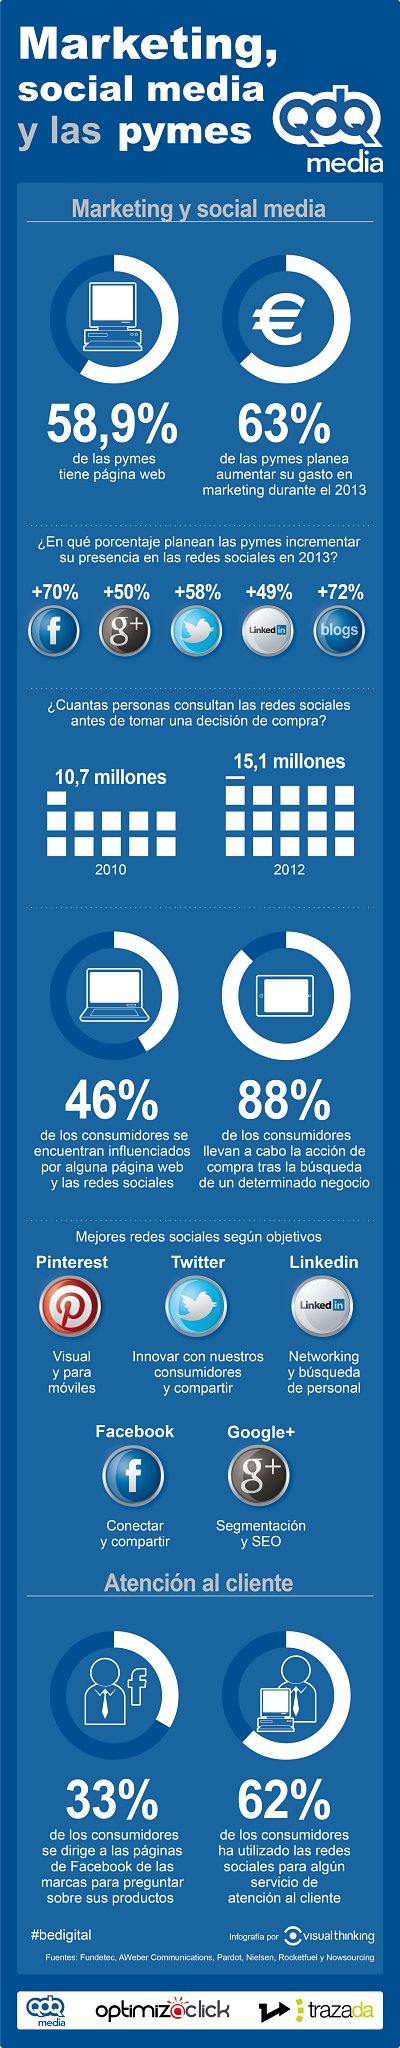 Marketing-social-media-y-las-pymes-parte-1_opt